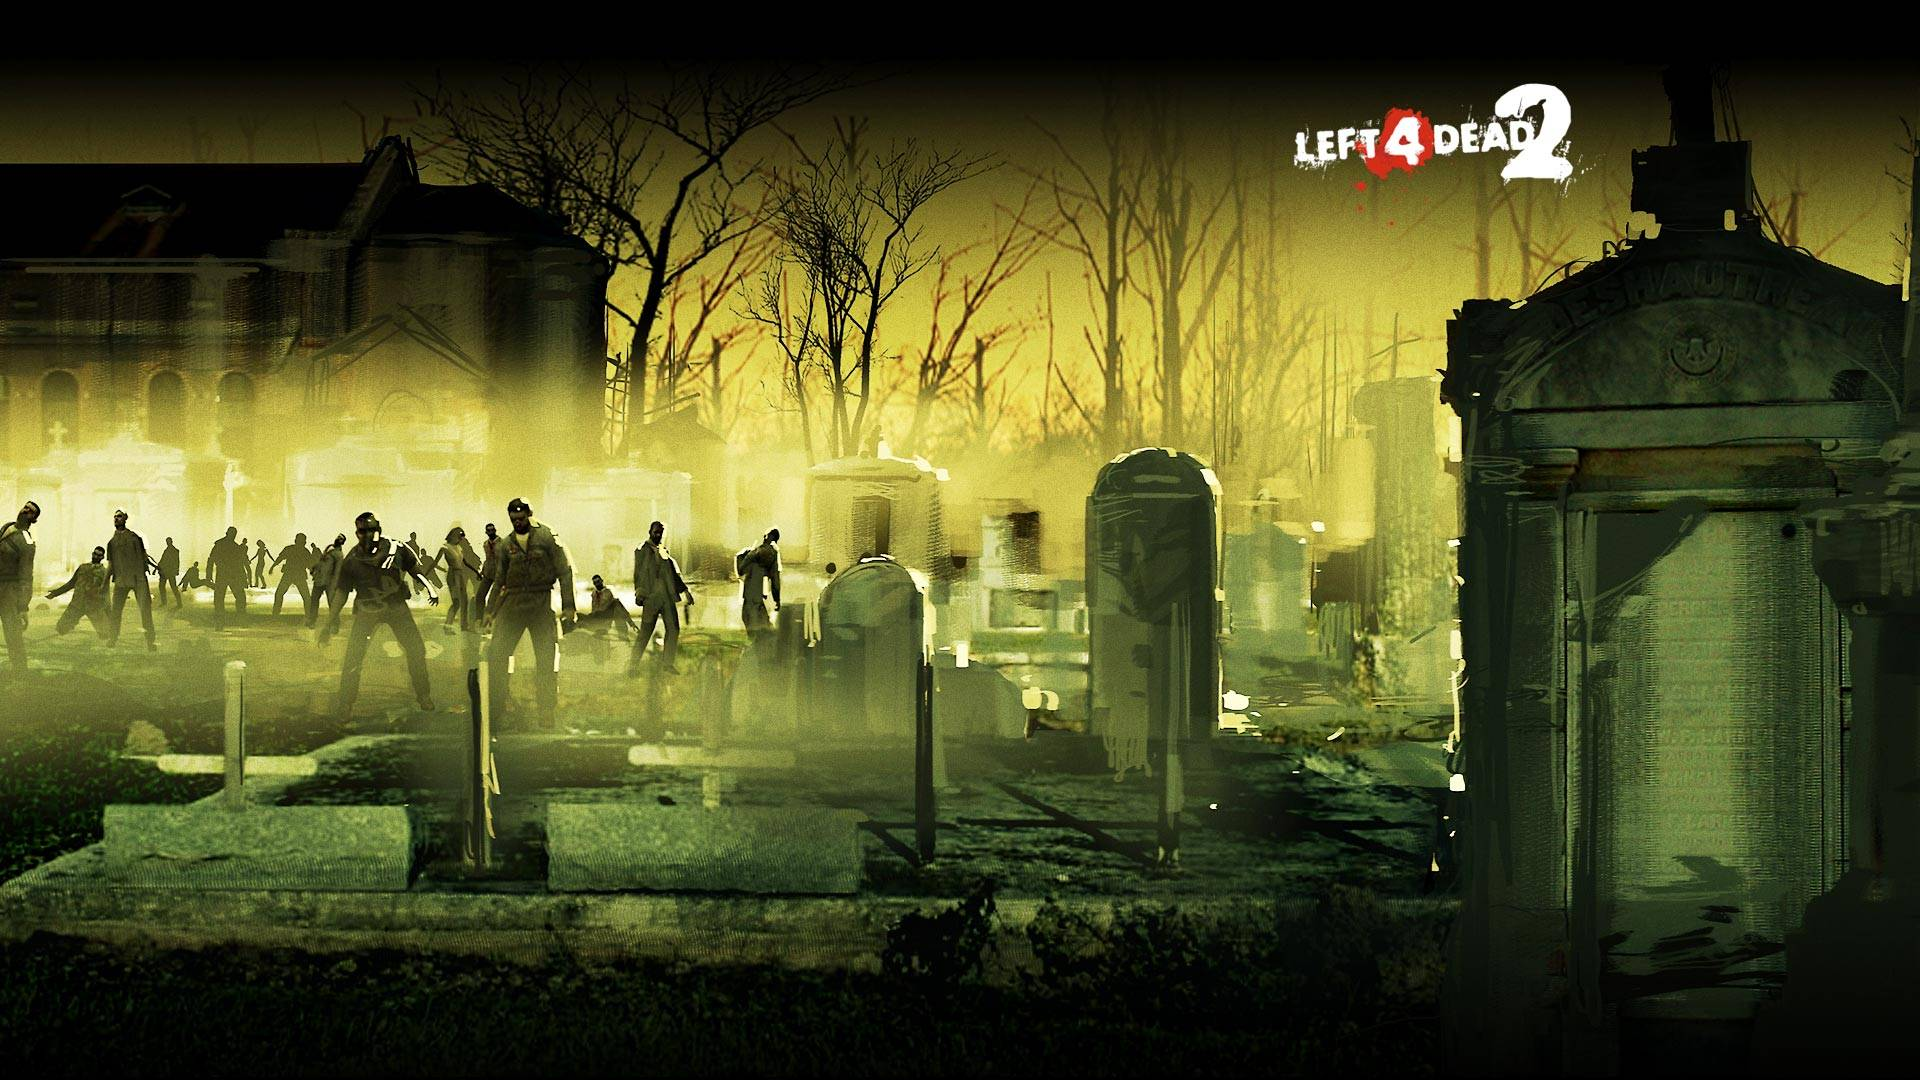 Report this Image? favorite it? enlarge^ 1920x1080 328513 KB. ,left 4 dead ...